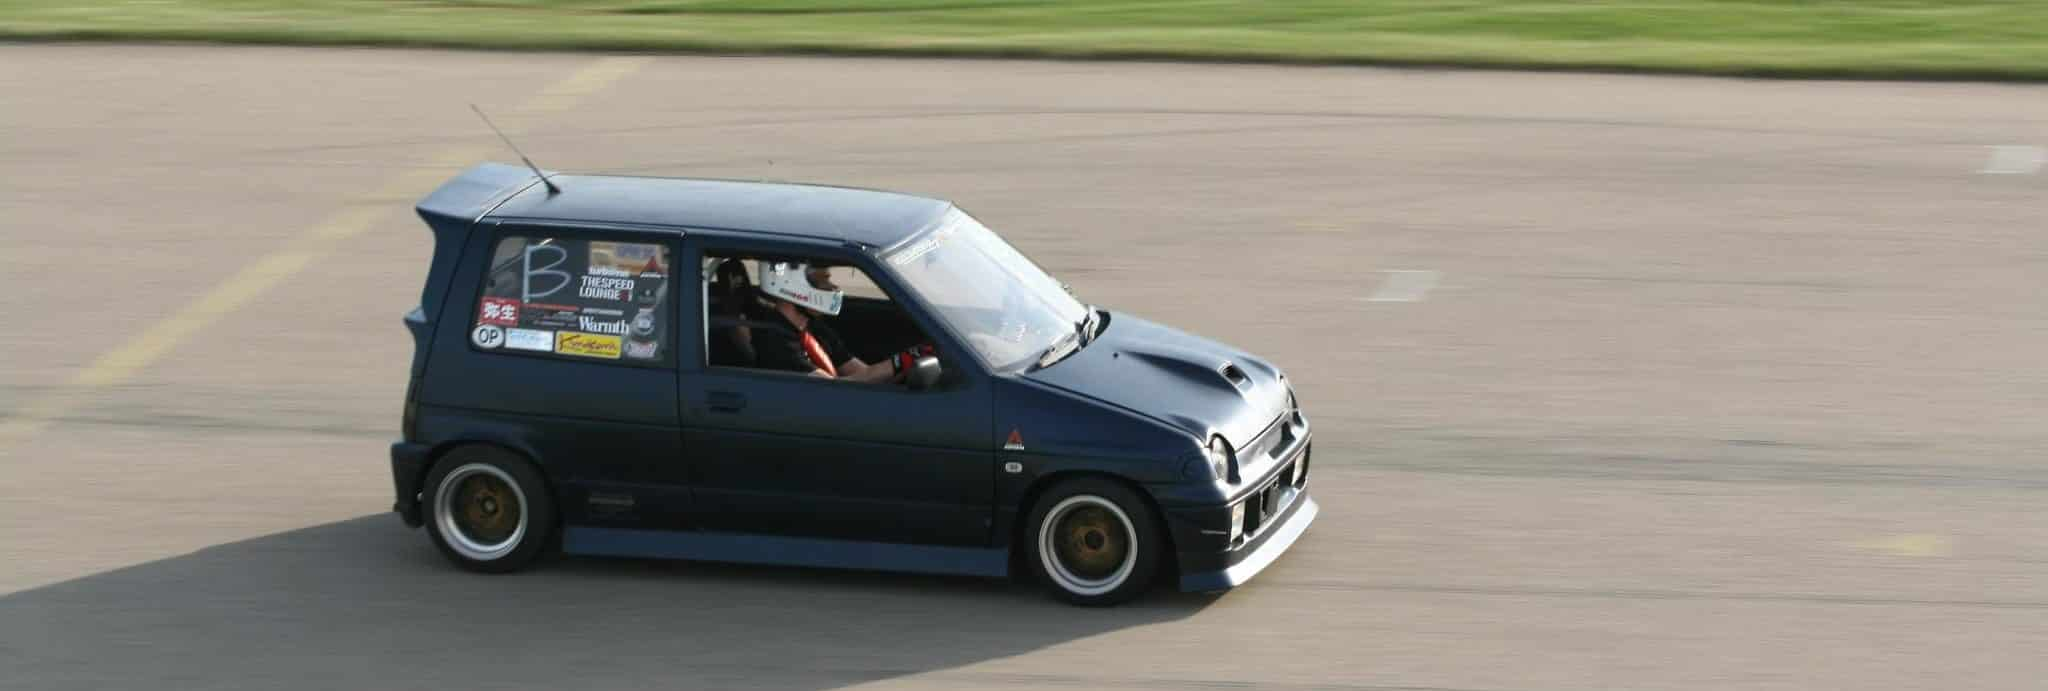 Suzuki Alto Works https://flickr.com/photos/grant_subaru/5752275448/